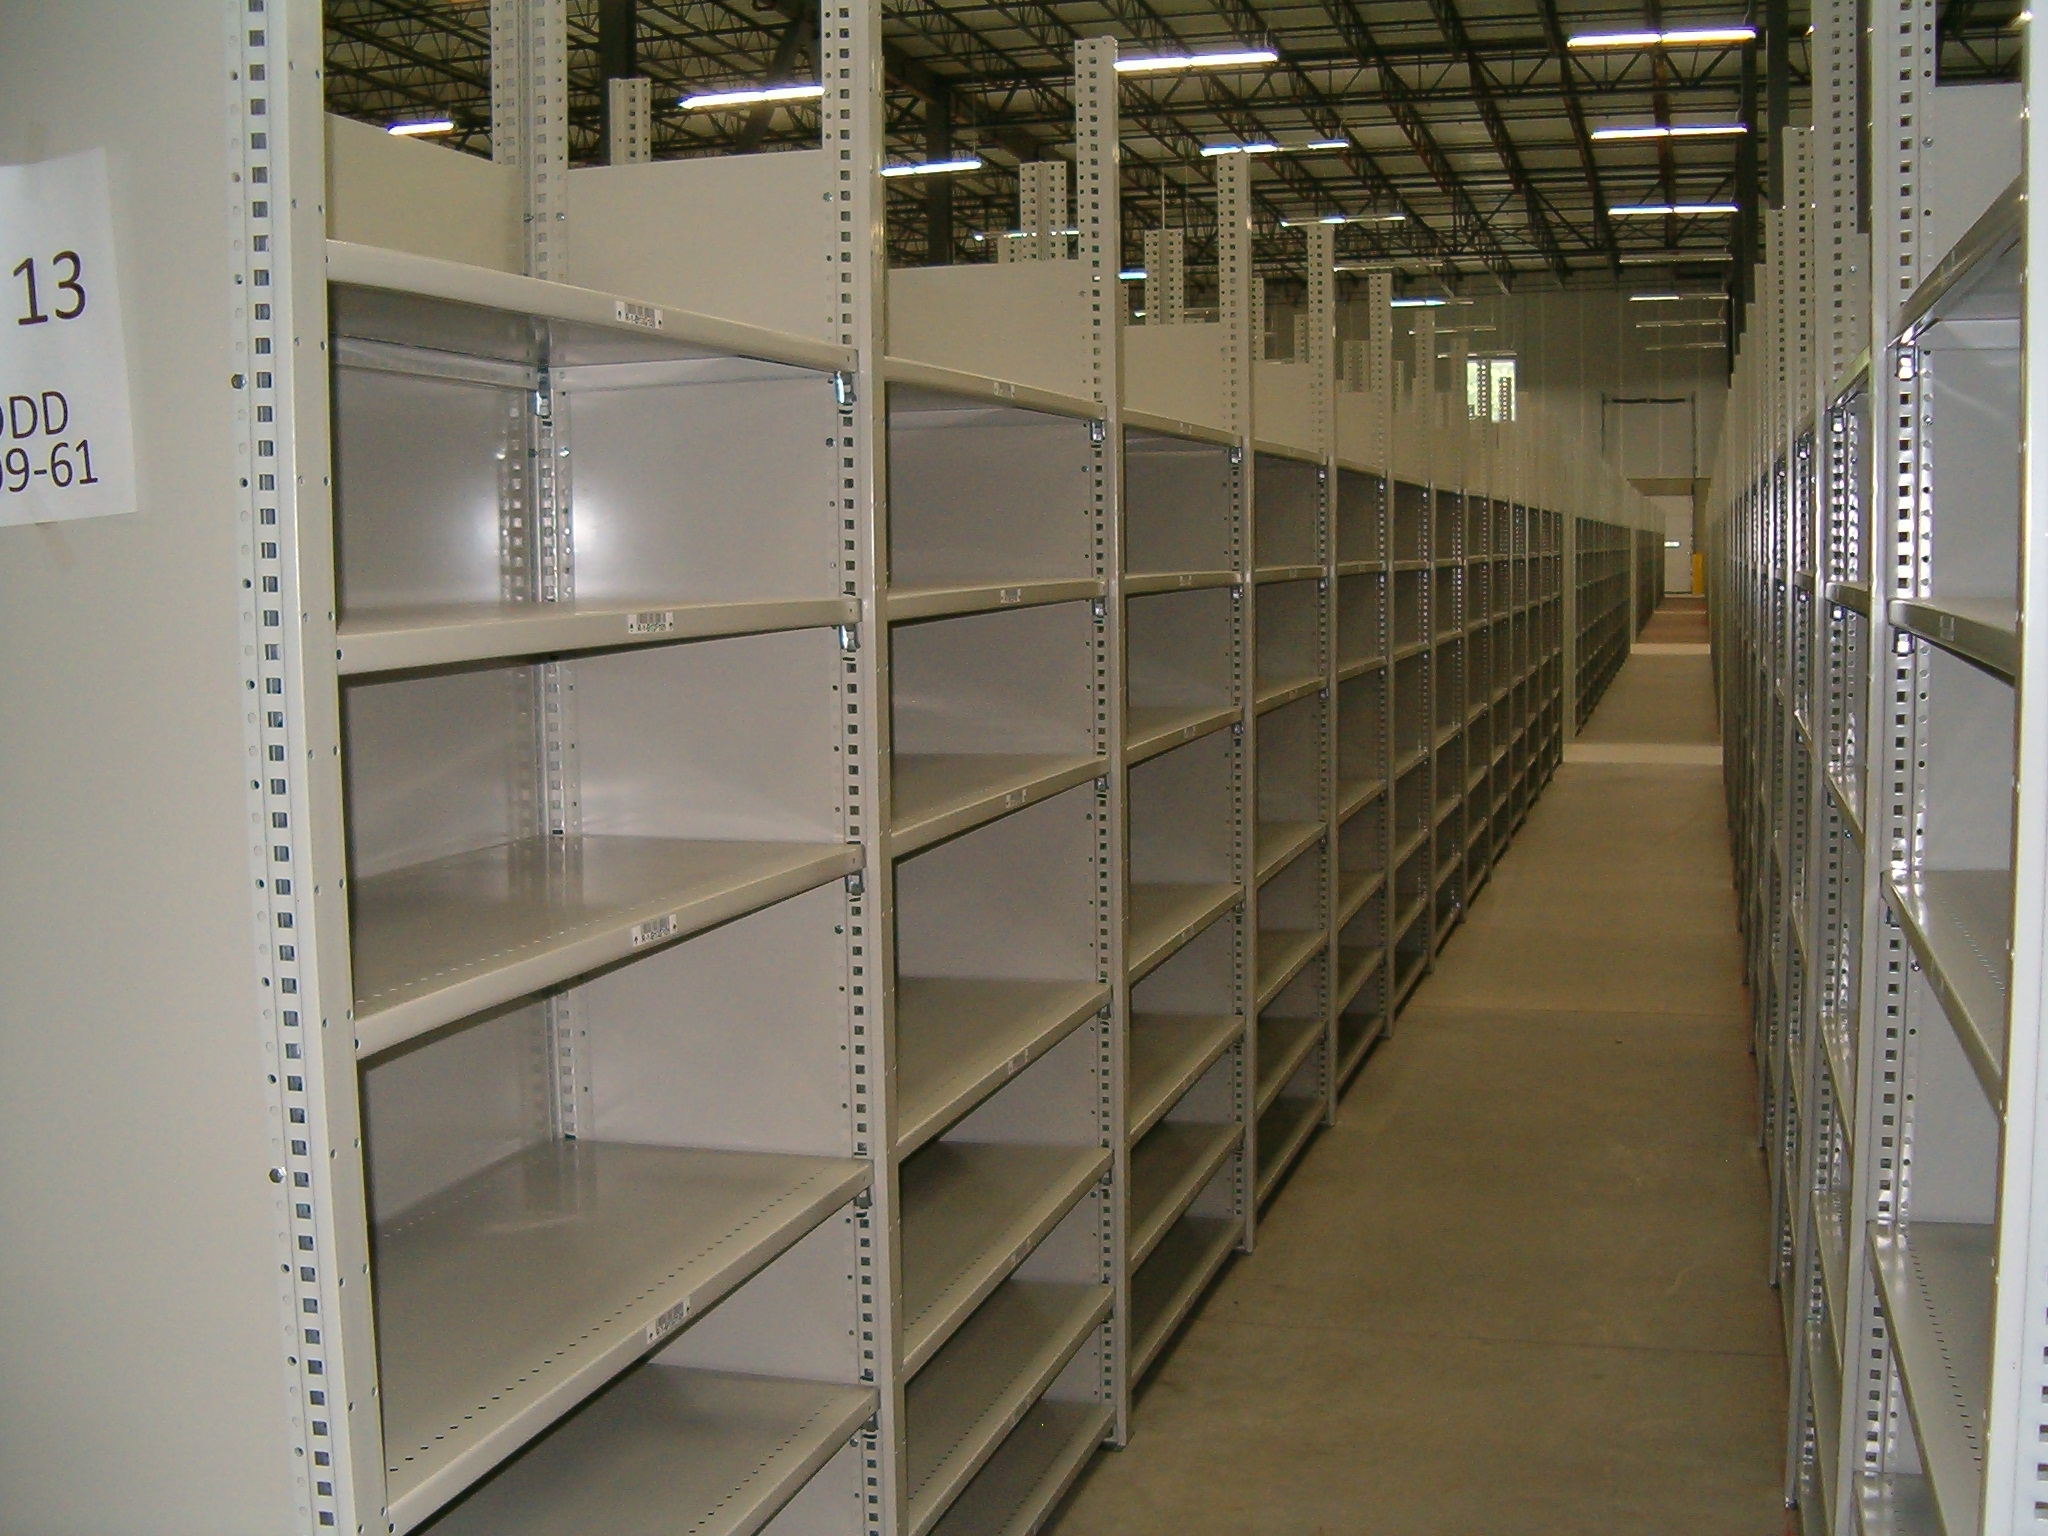 Shelving Warehouse Design